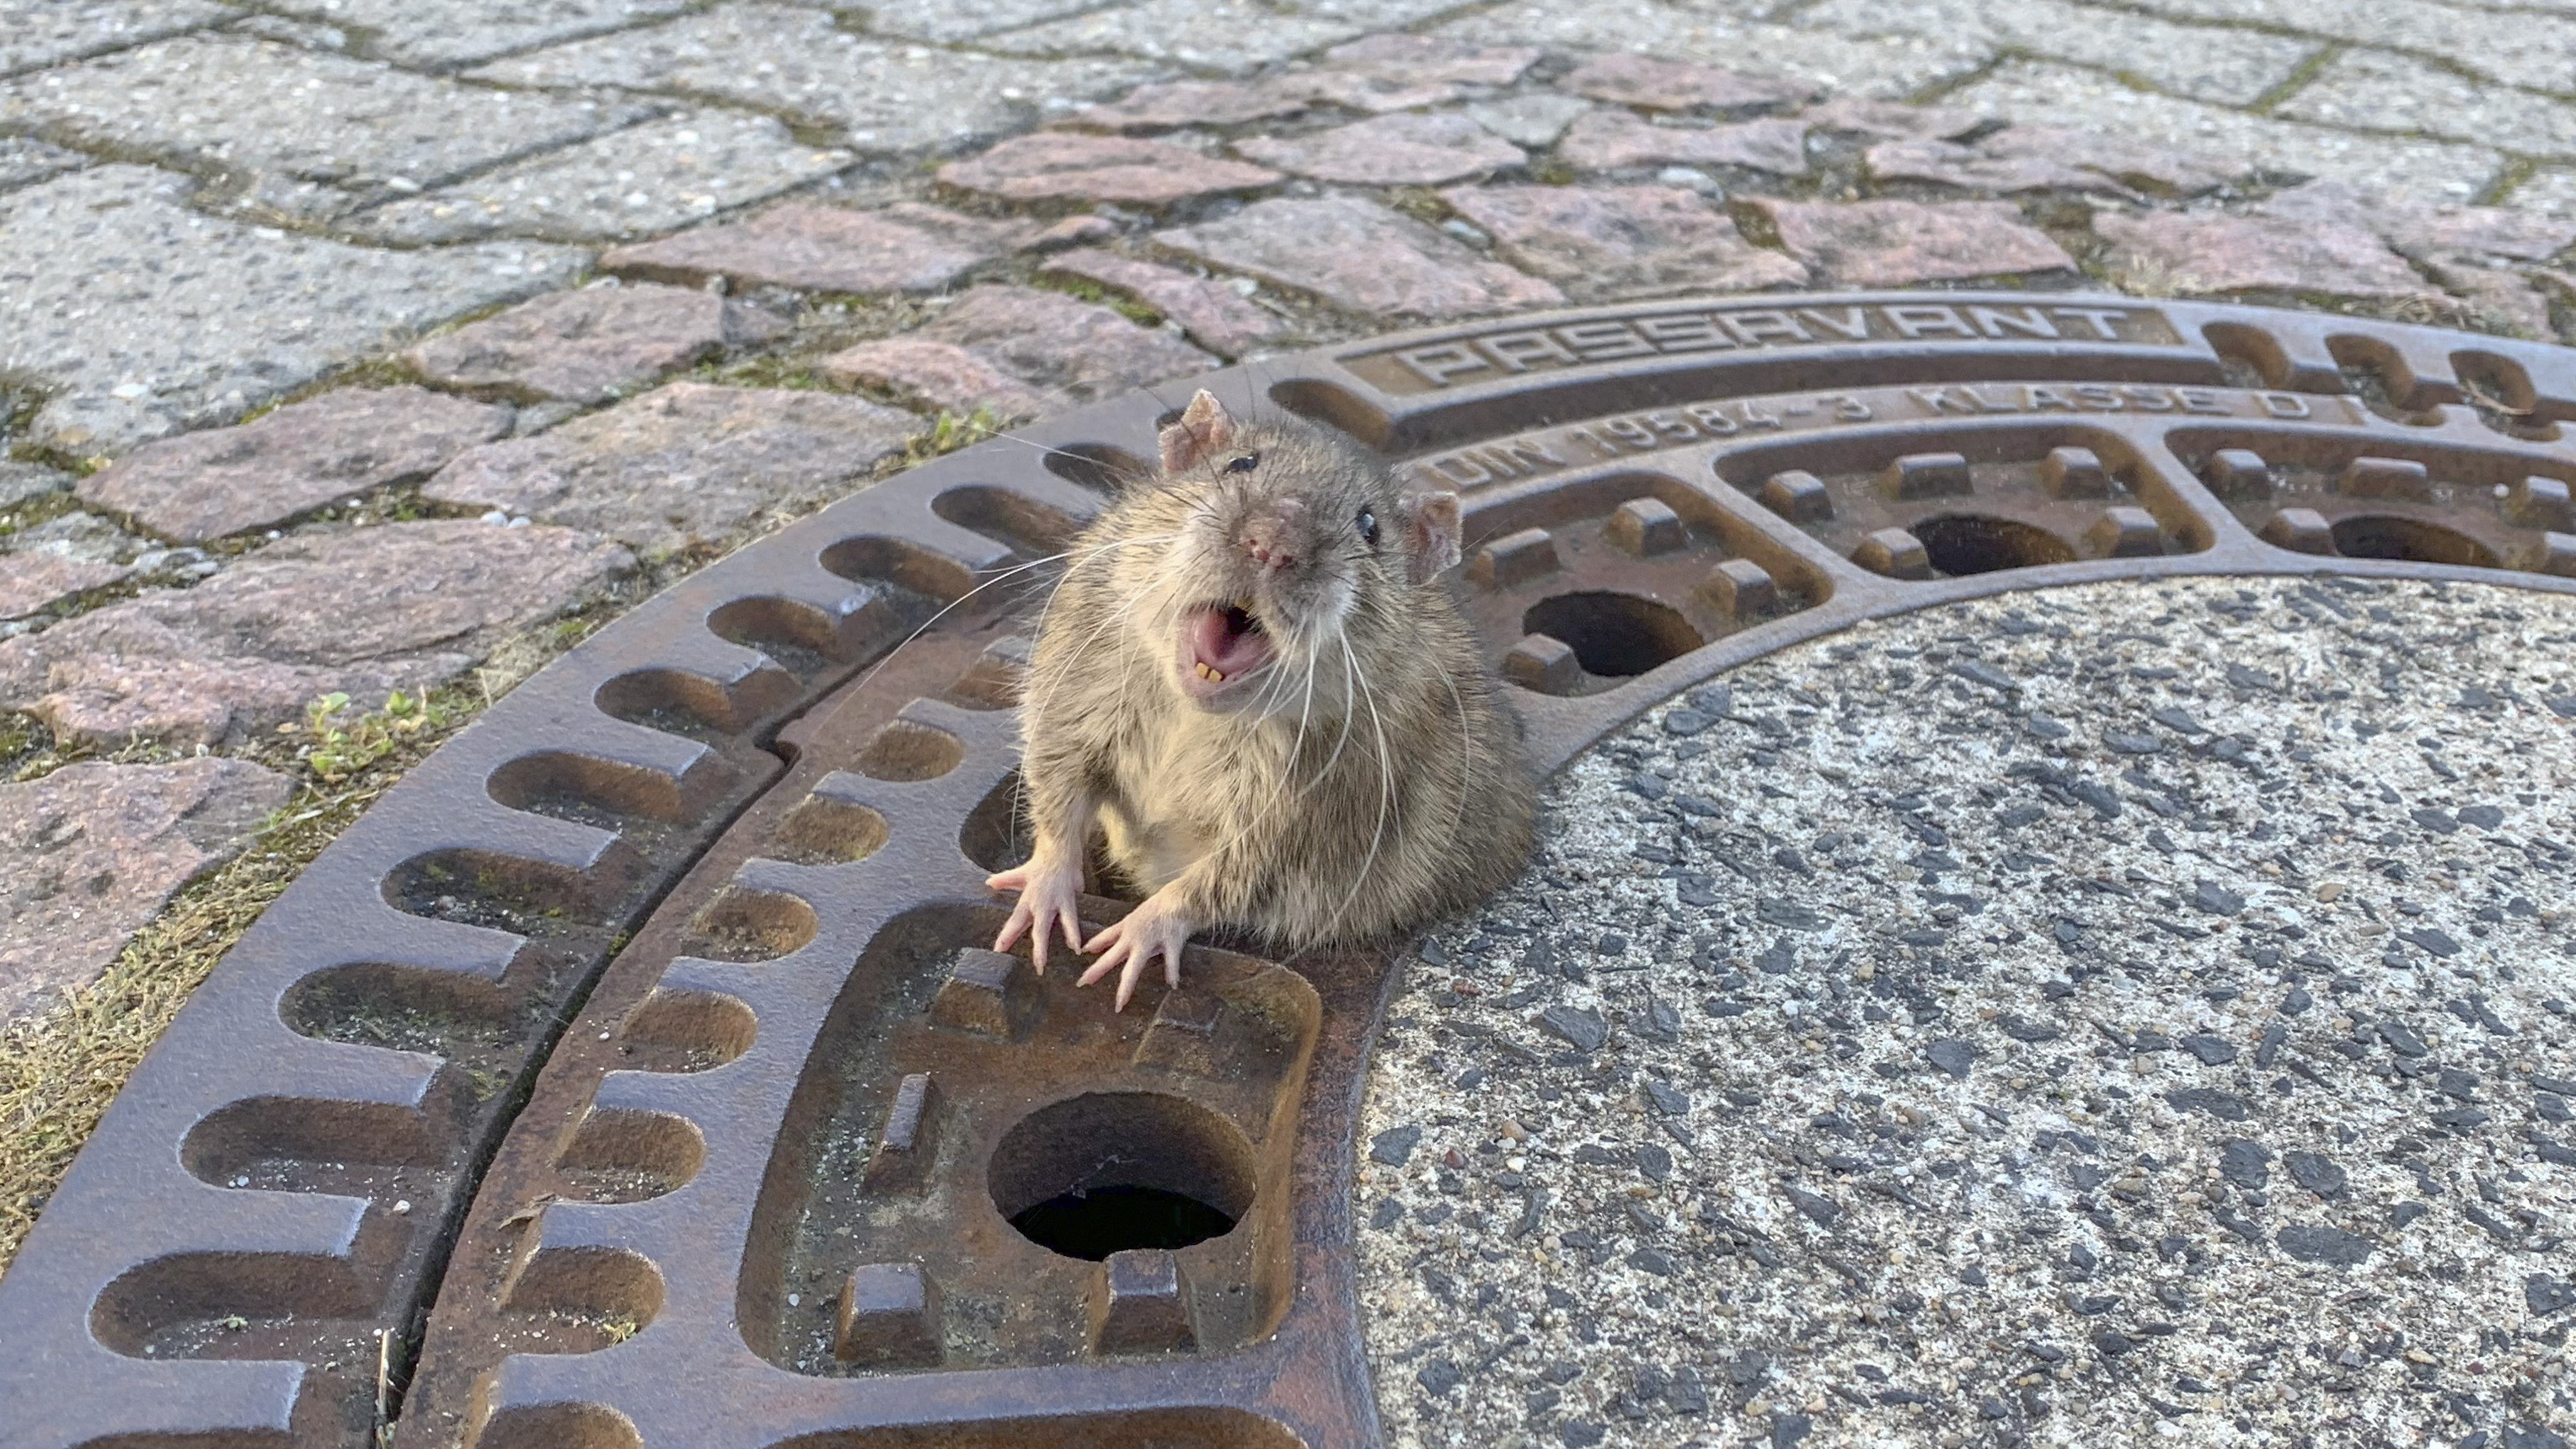 A plump rat stuck in a manhole cover spurred volunteer